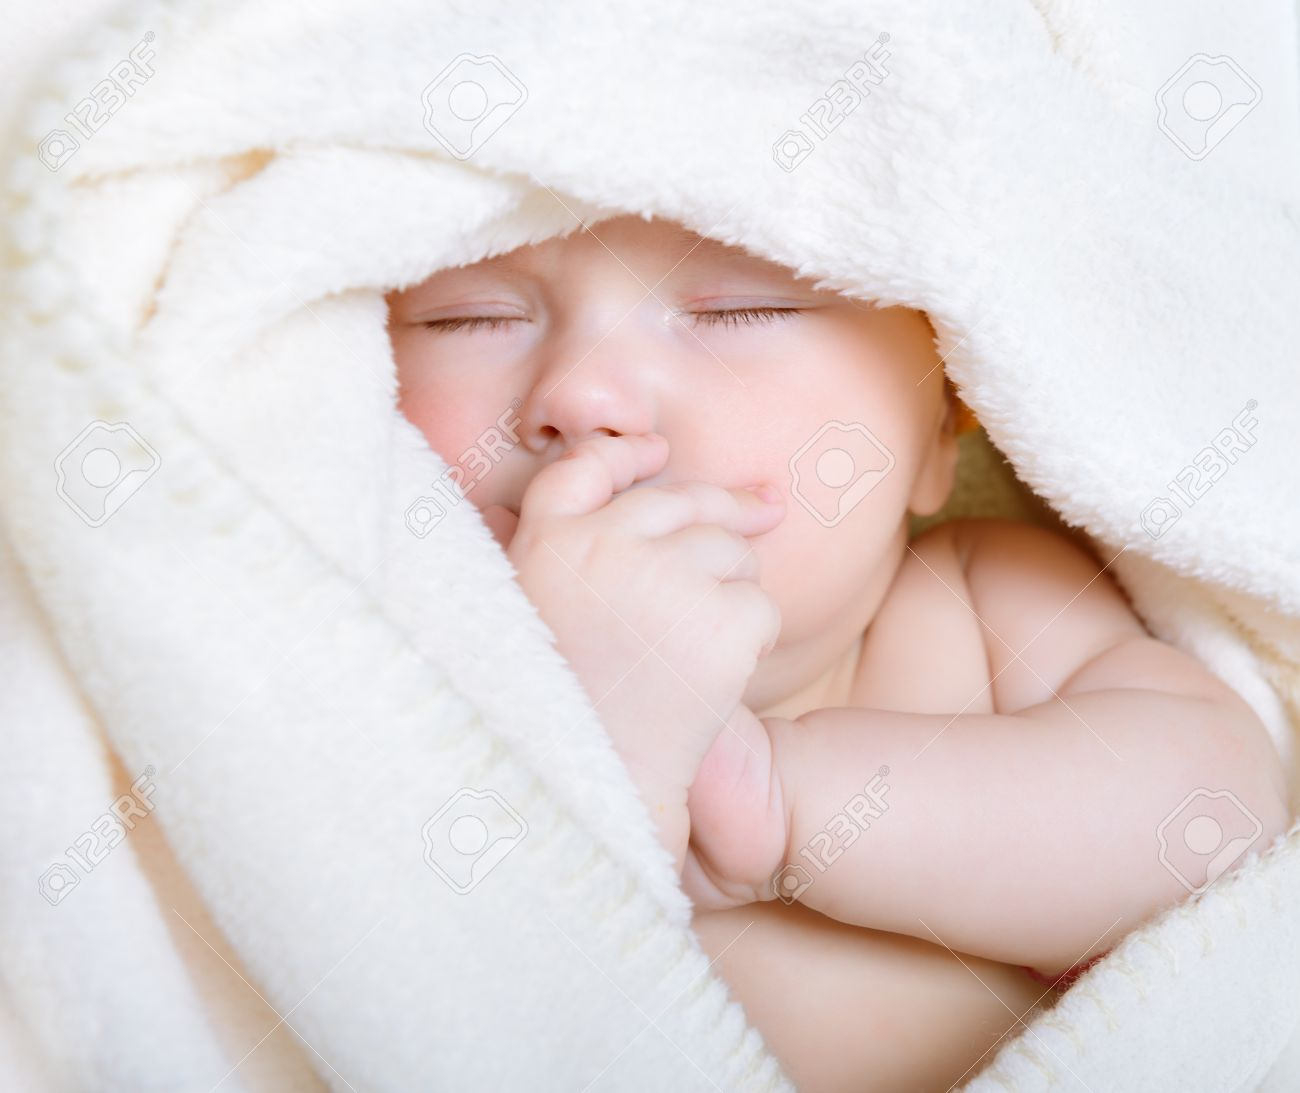 Cute Sleeping Baby Boy Beautiful Infant Face Closeup Stock Photo Picture And Royalty Free Image Image 19086095